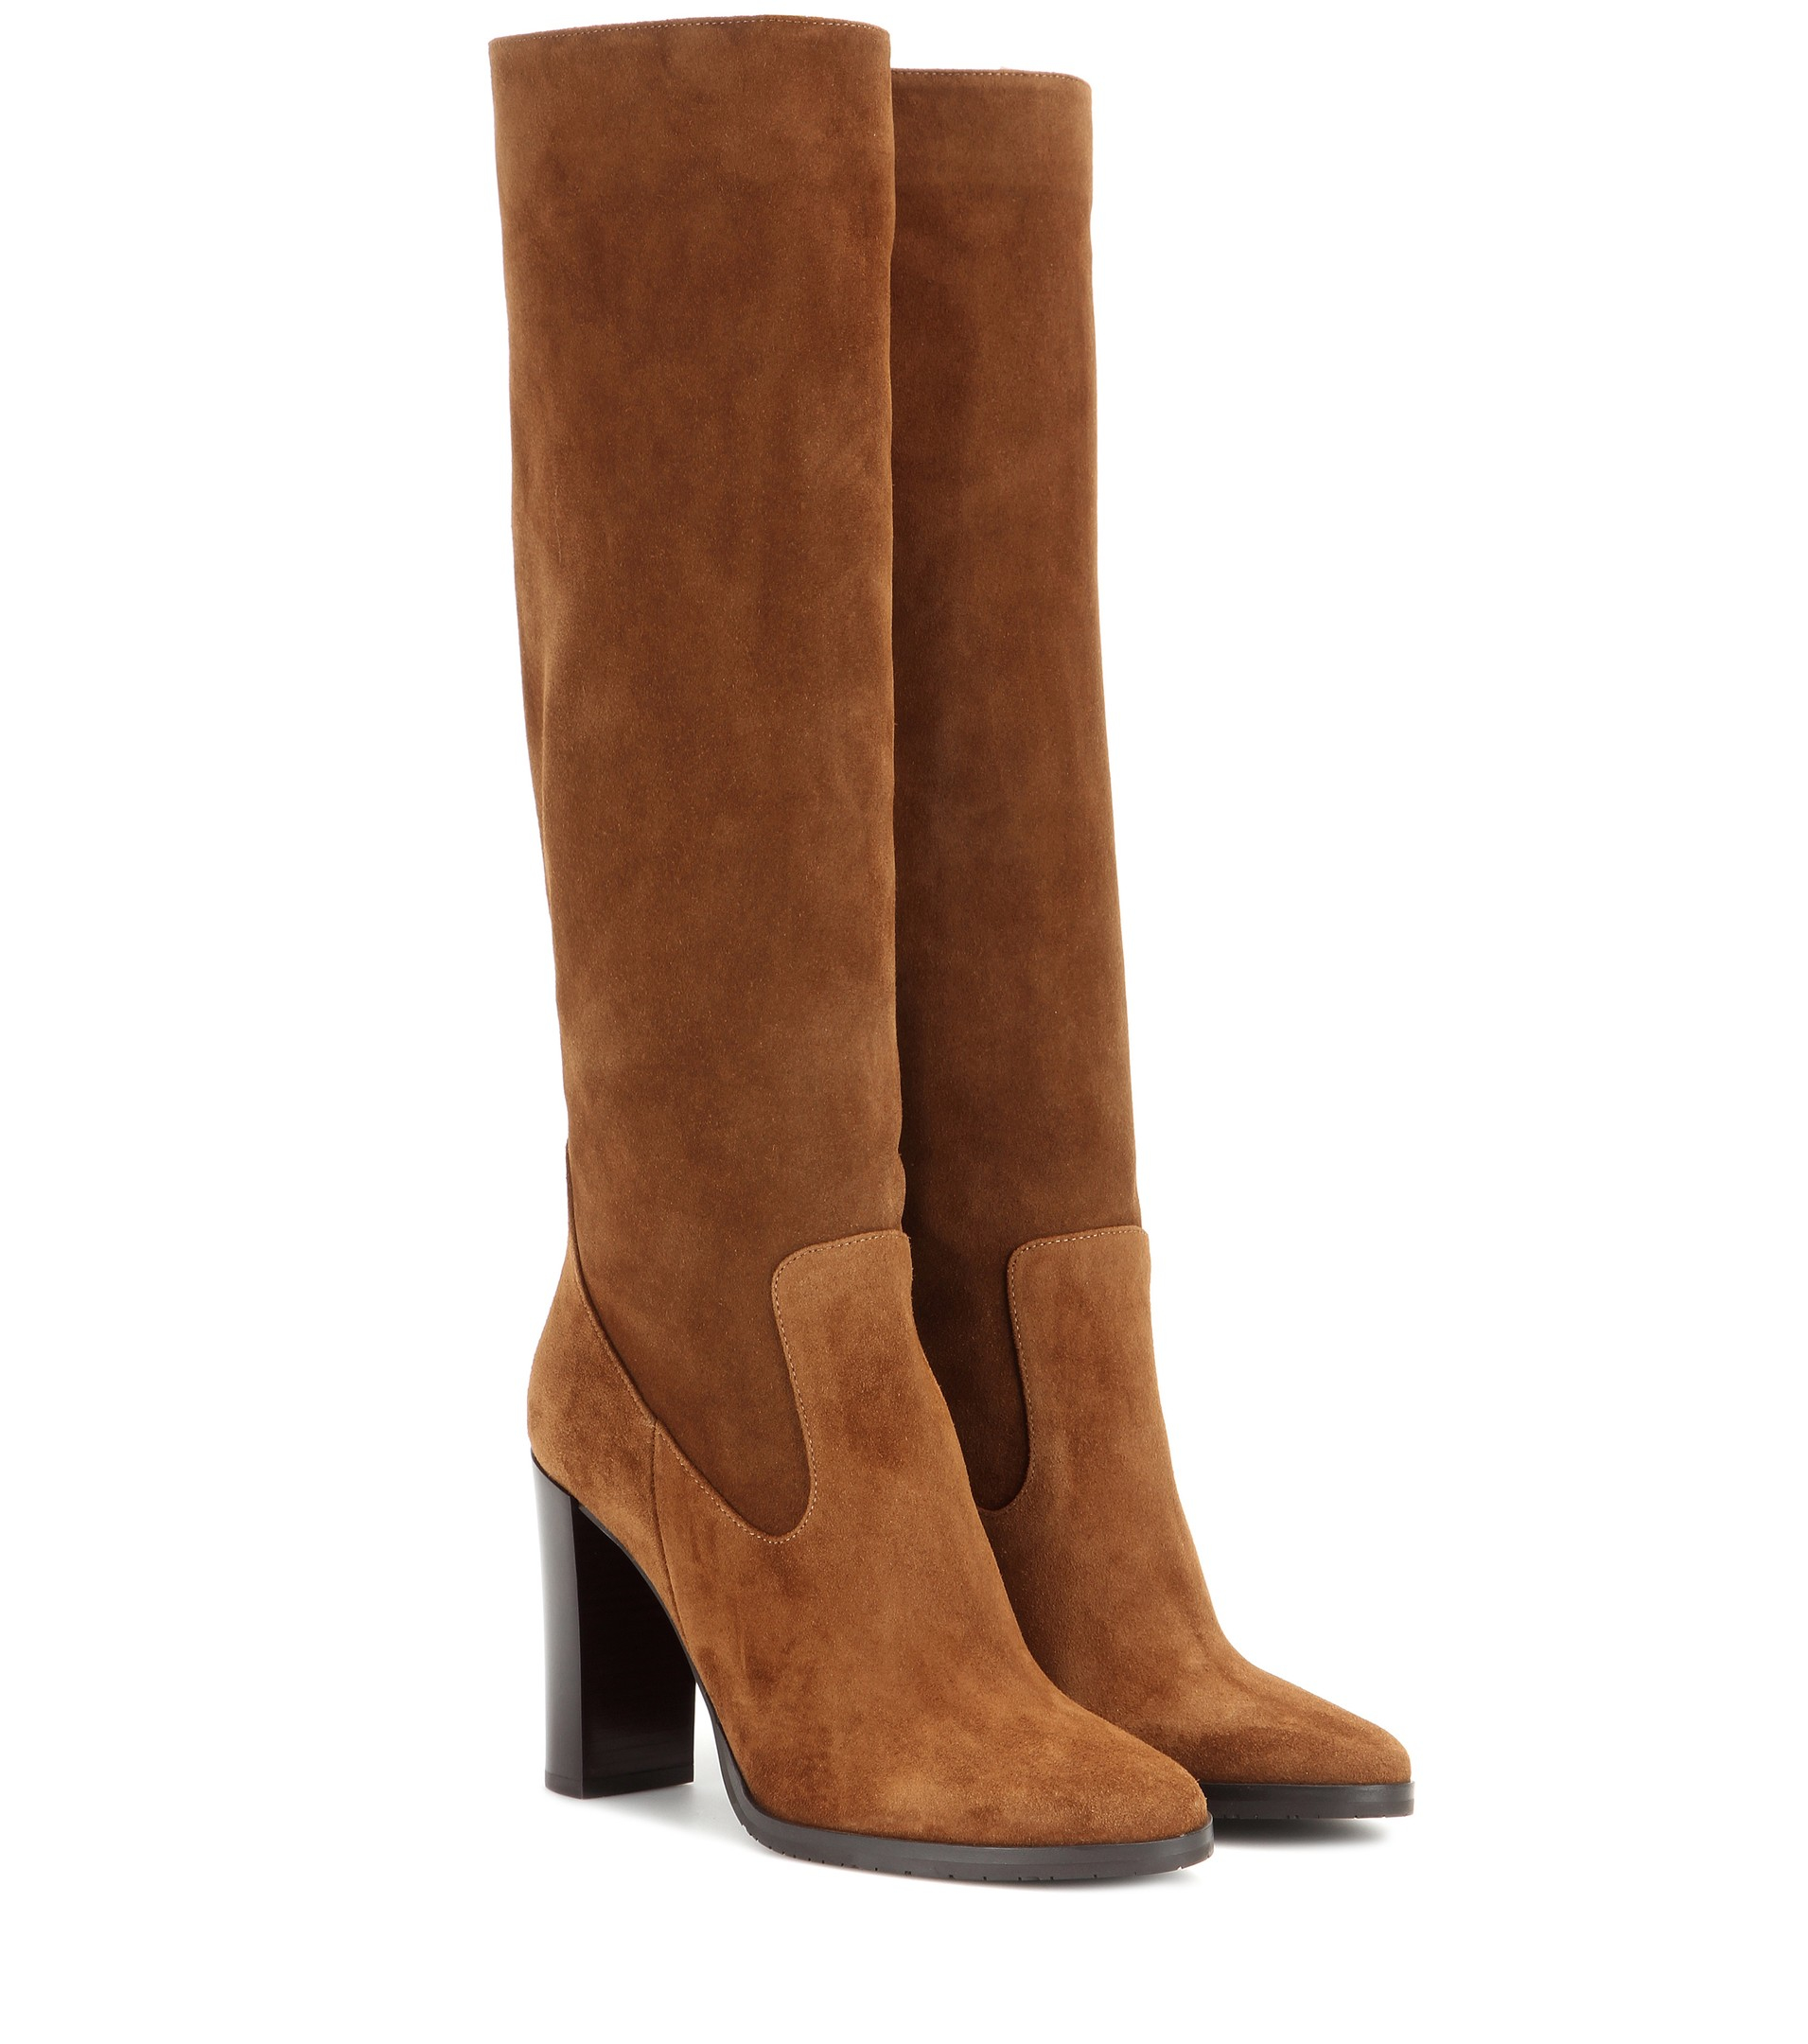 a580abc4c9717 Lyst - Jimmy Choo Honor 95 Suede Knee-High Boots in Brown